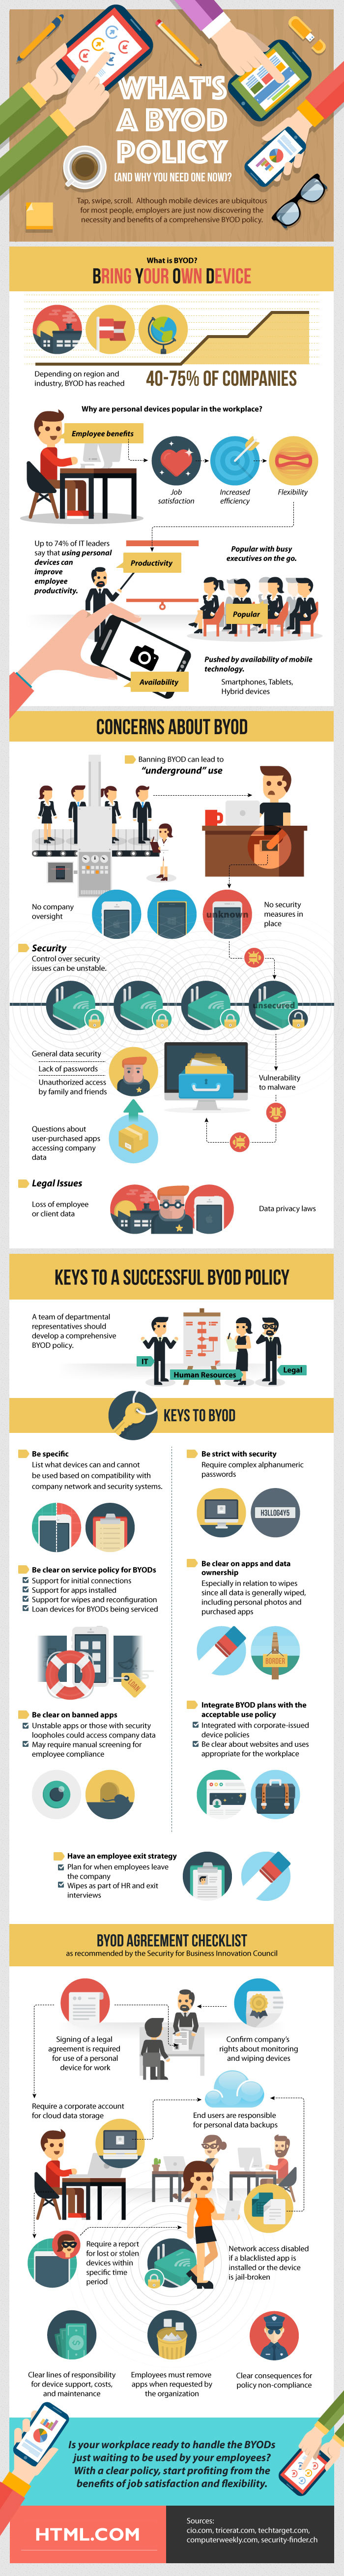 BYOD graphic provided by HTML.com